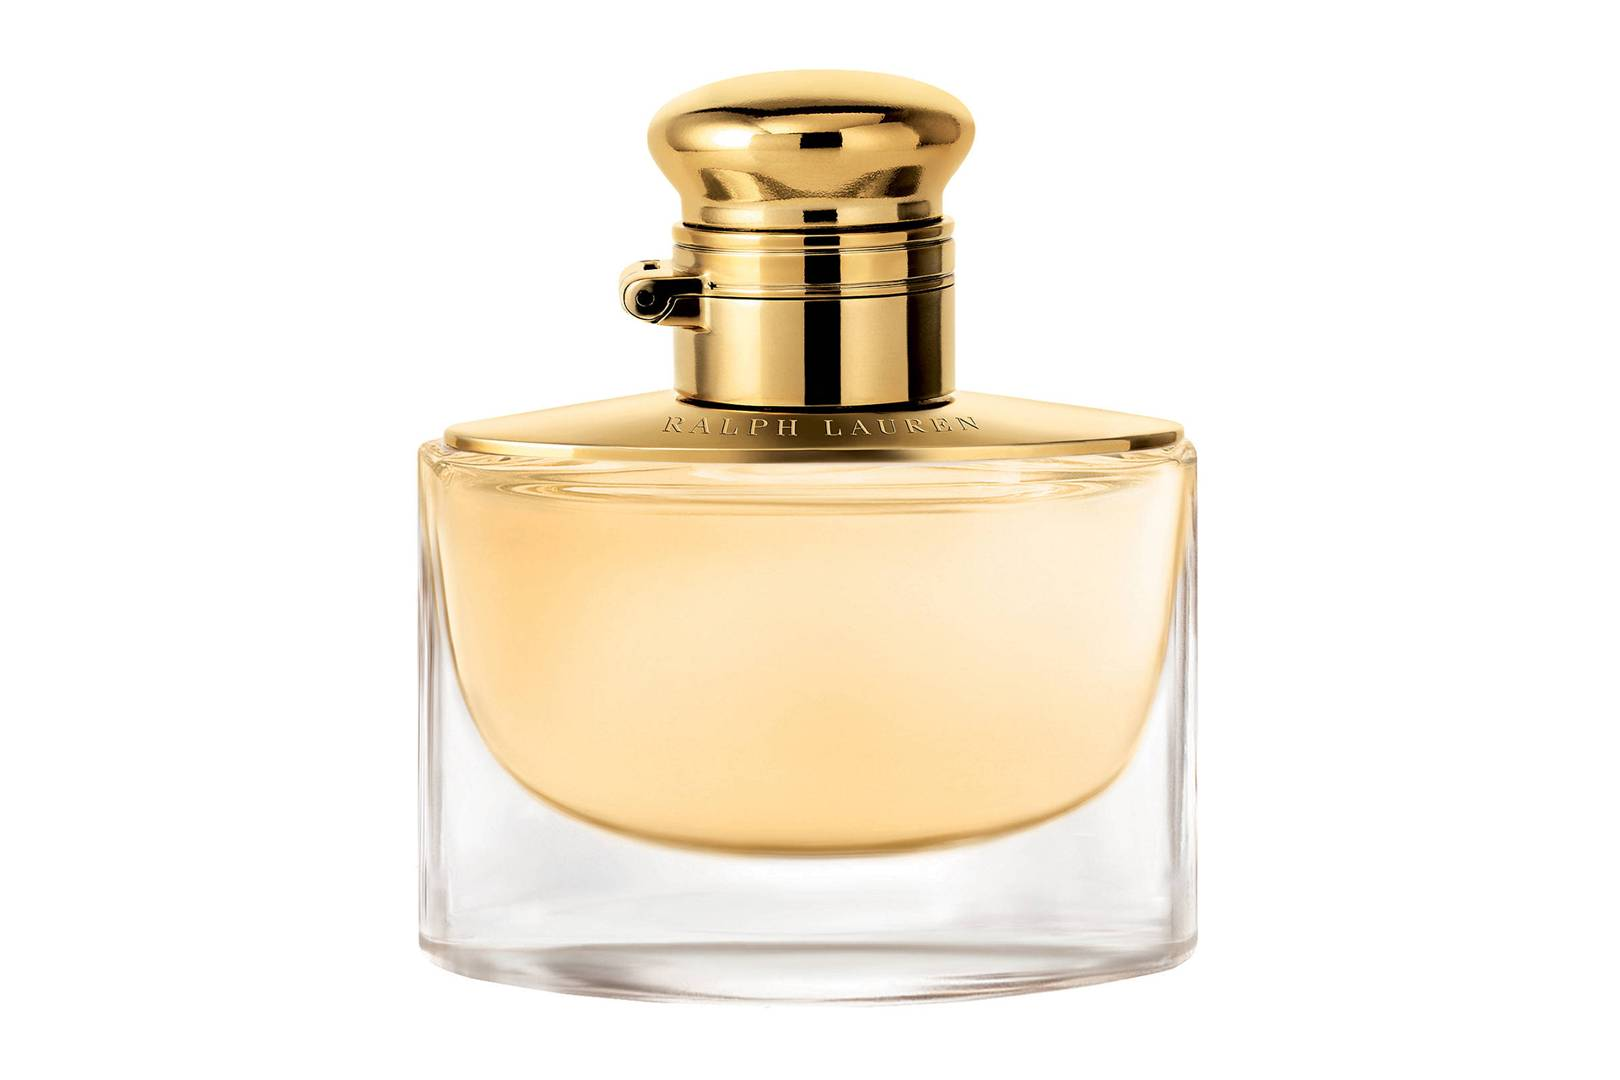 New 2019The Launches Perfumes Know To About Best Fragrance iukXOZP